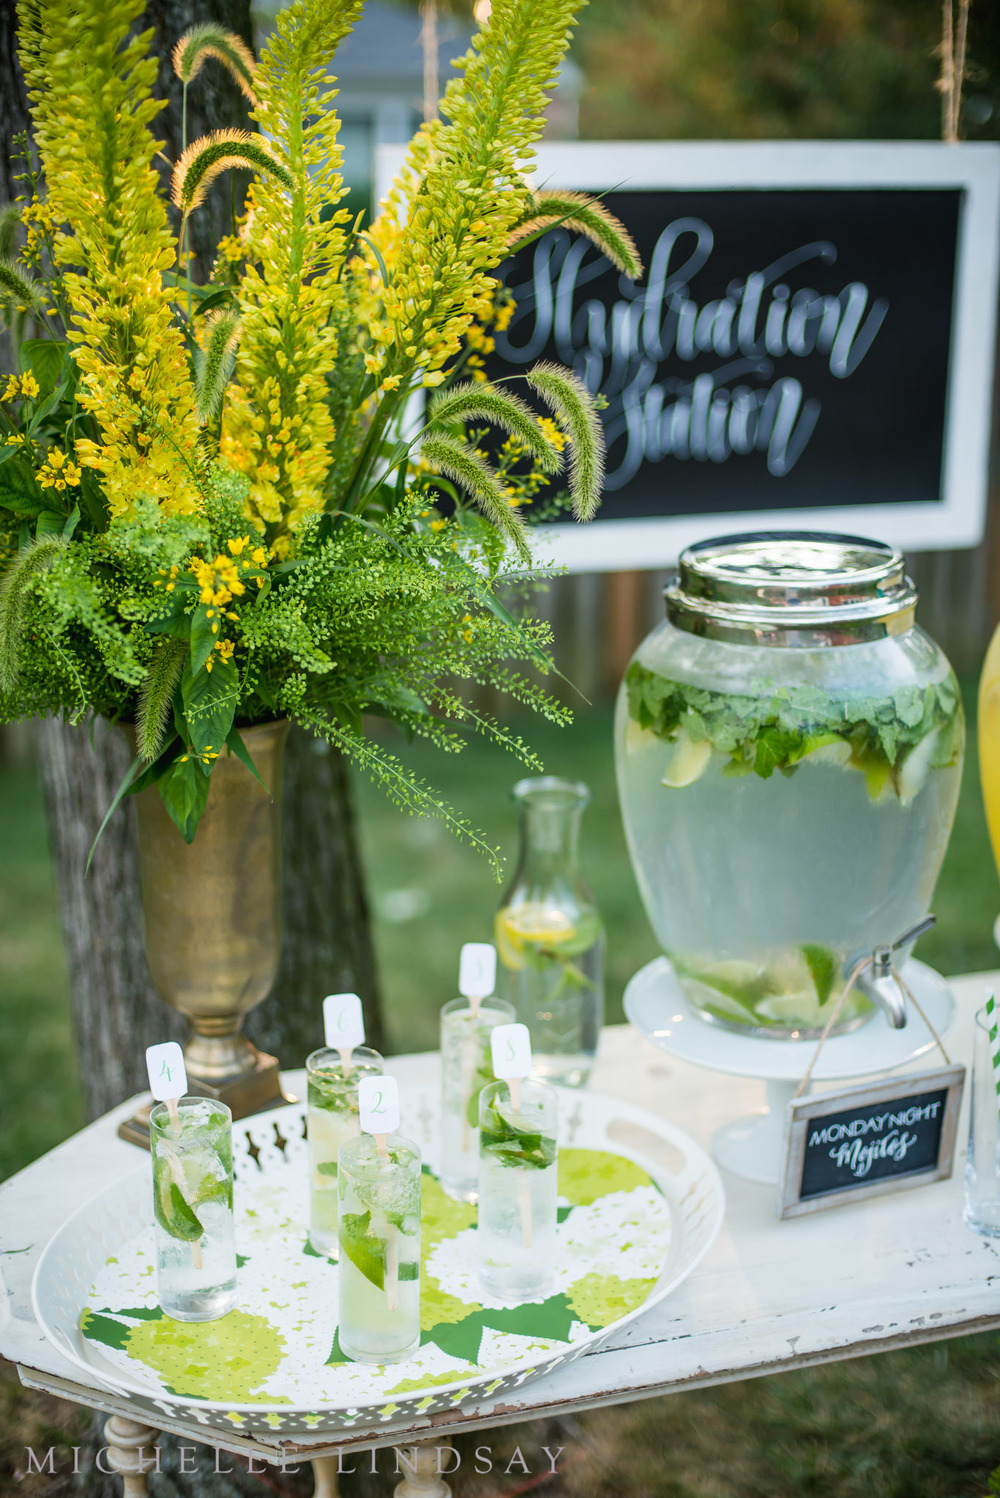 B Floral and Event Design | Full Service Floral and Event Design Company Servicing Maryland, Washington DC, Virginia and Beyond | Michelle Lindsay Photography